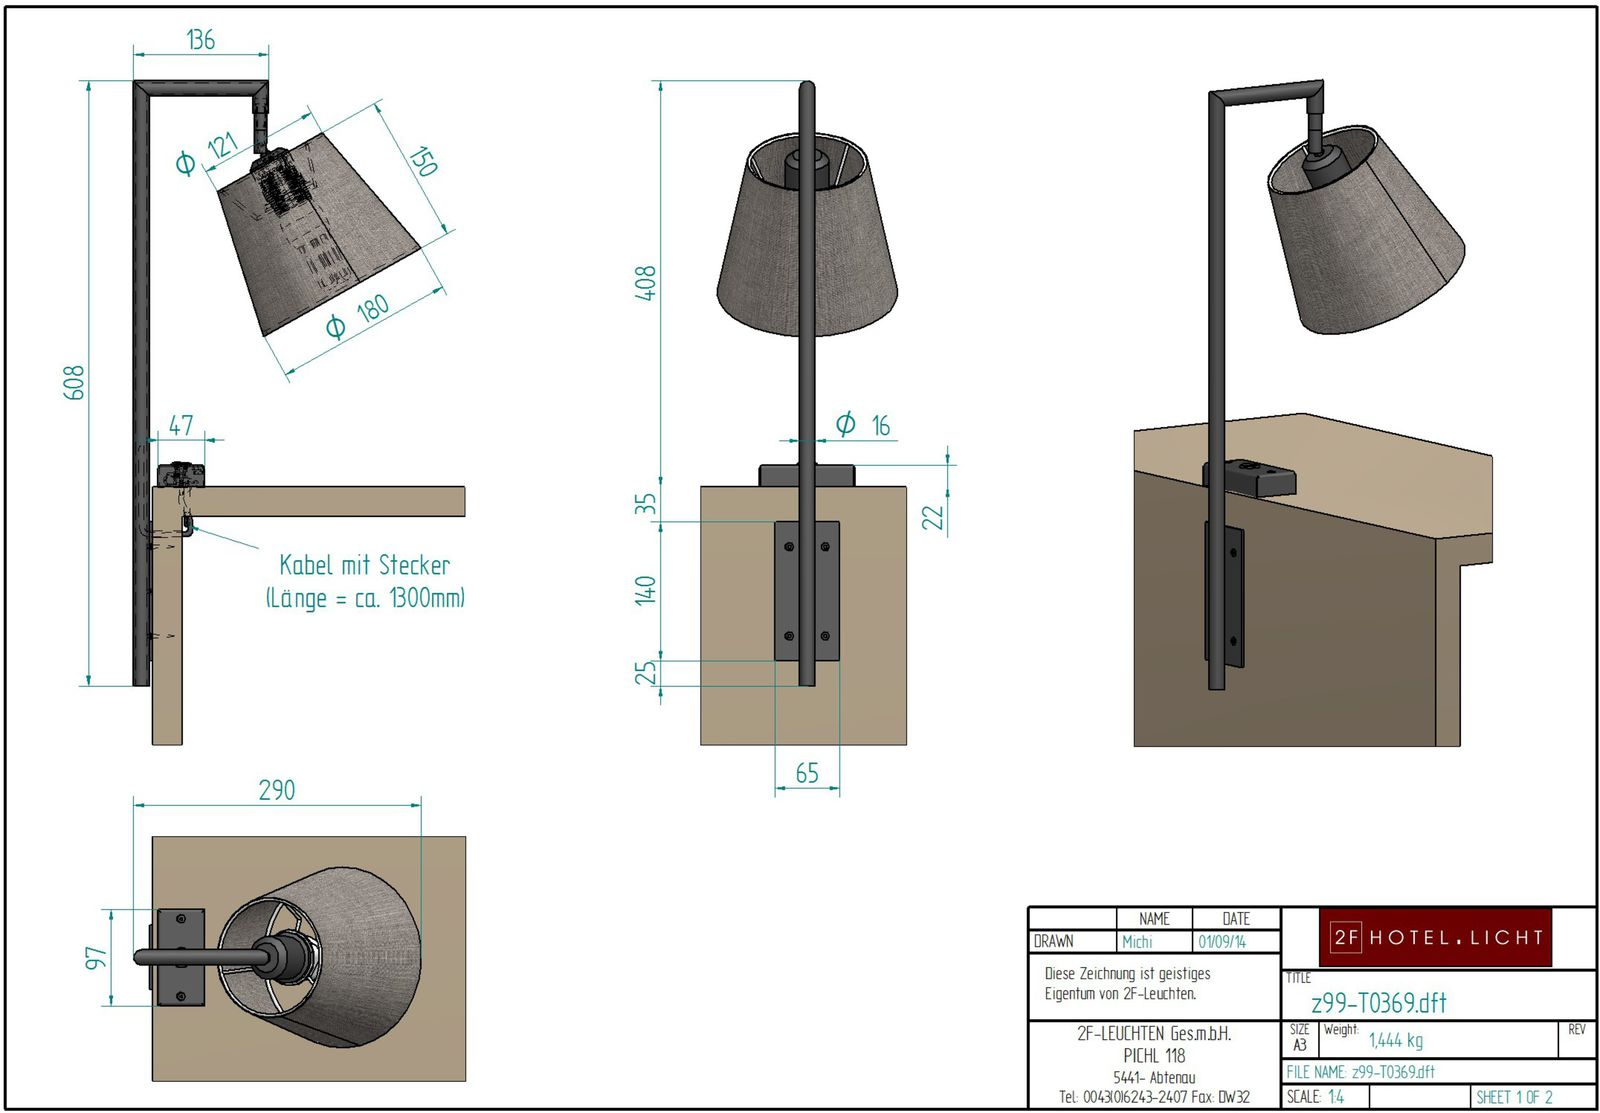 Table lamp, l=Ø180mm, wide=330mm, height=390mm, surface: wrought iron, black, techn. Data: 1xE27, 11W